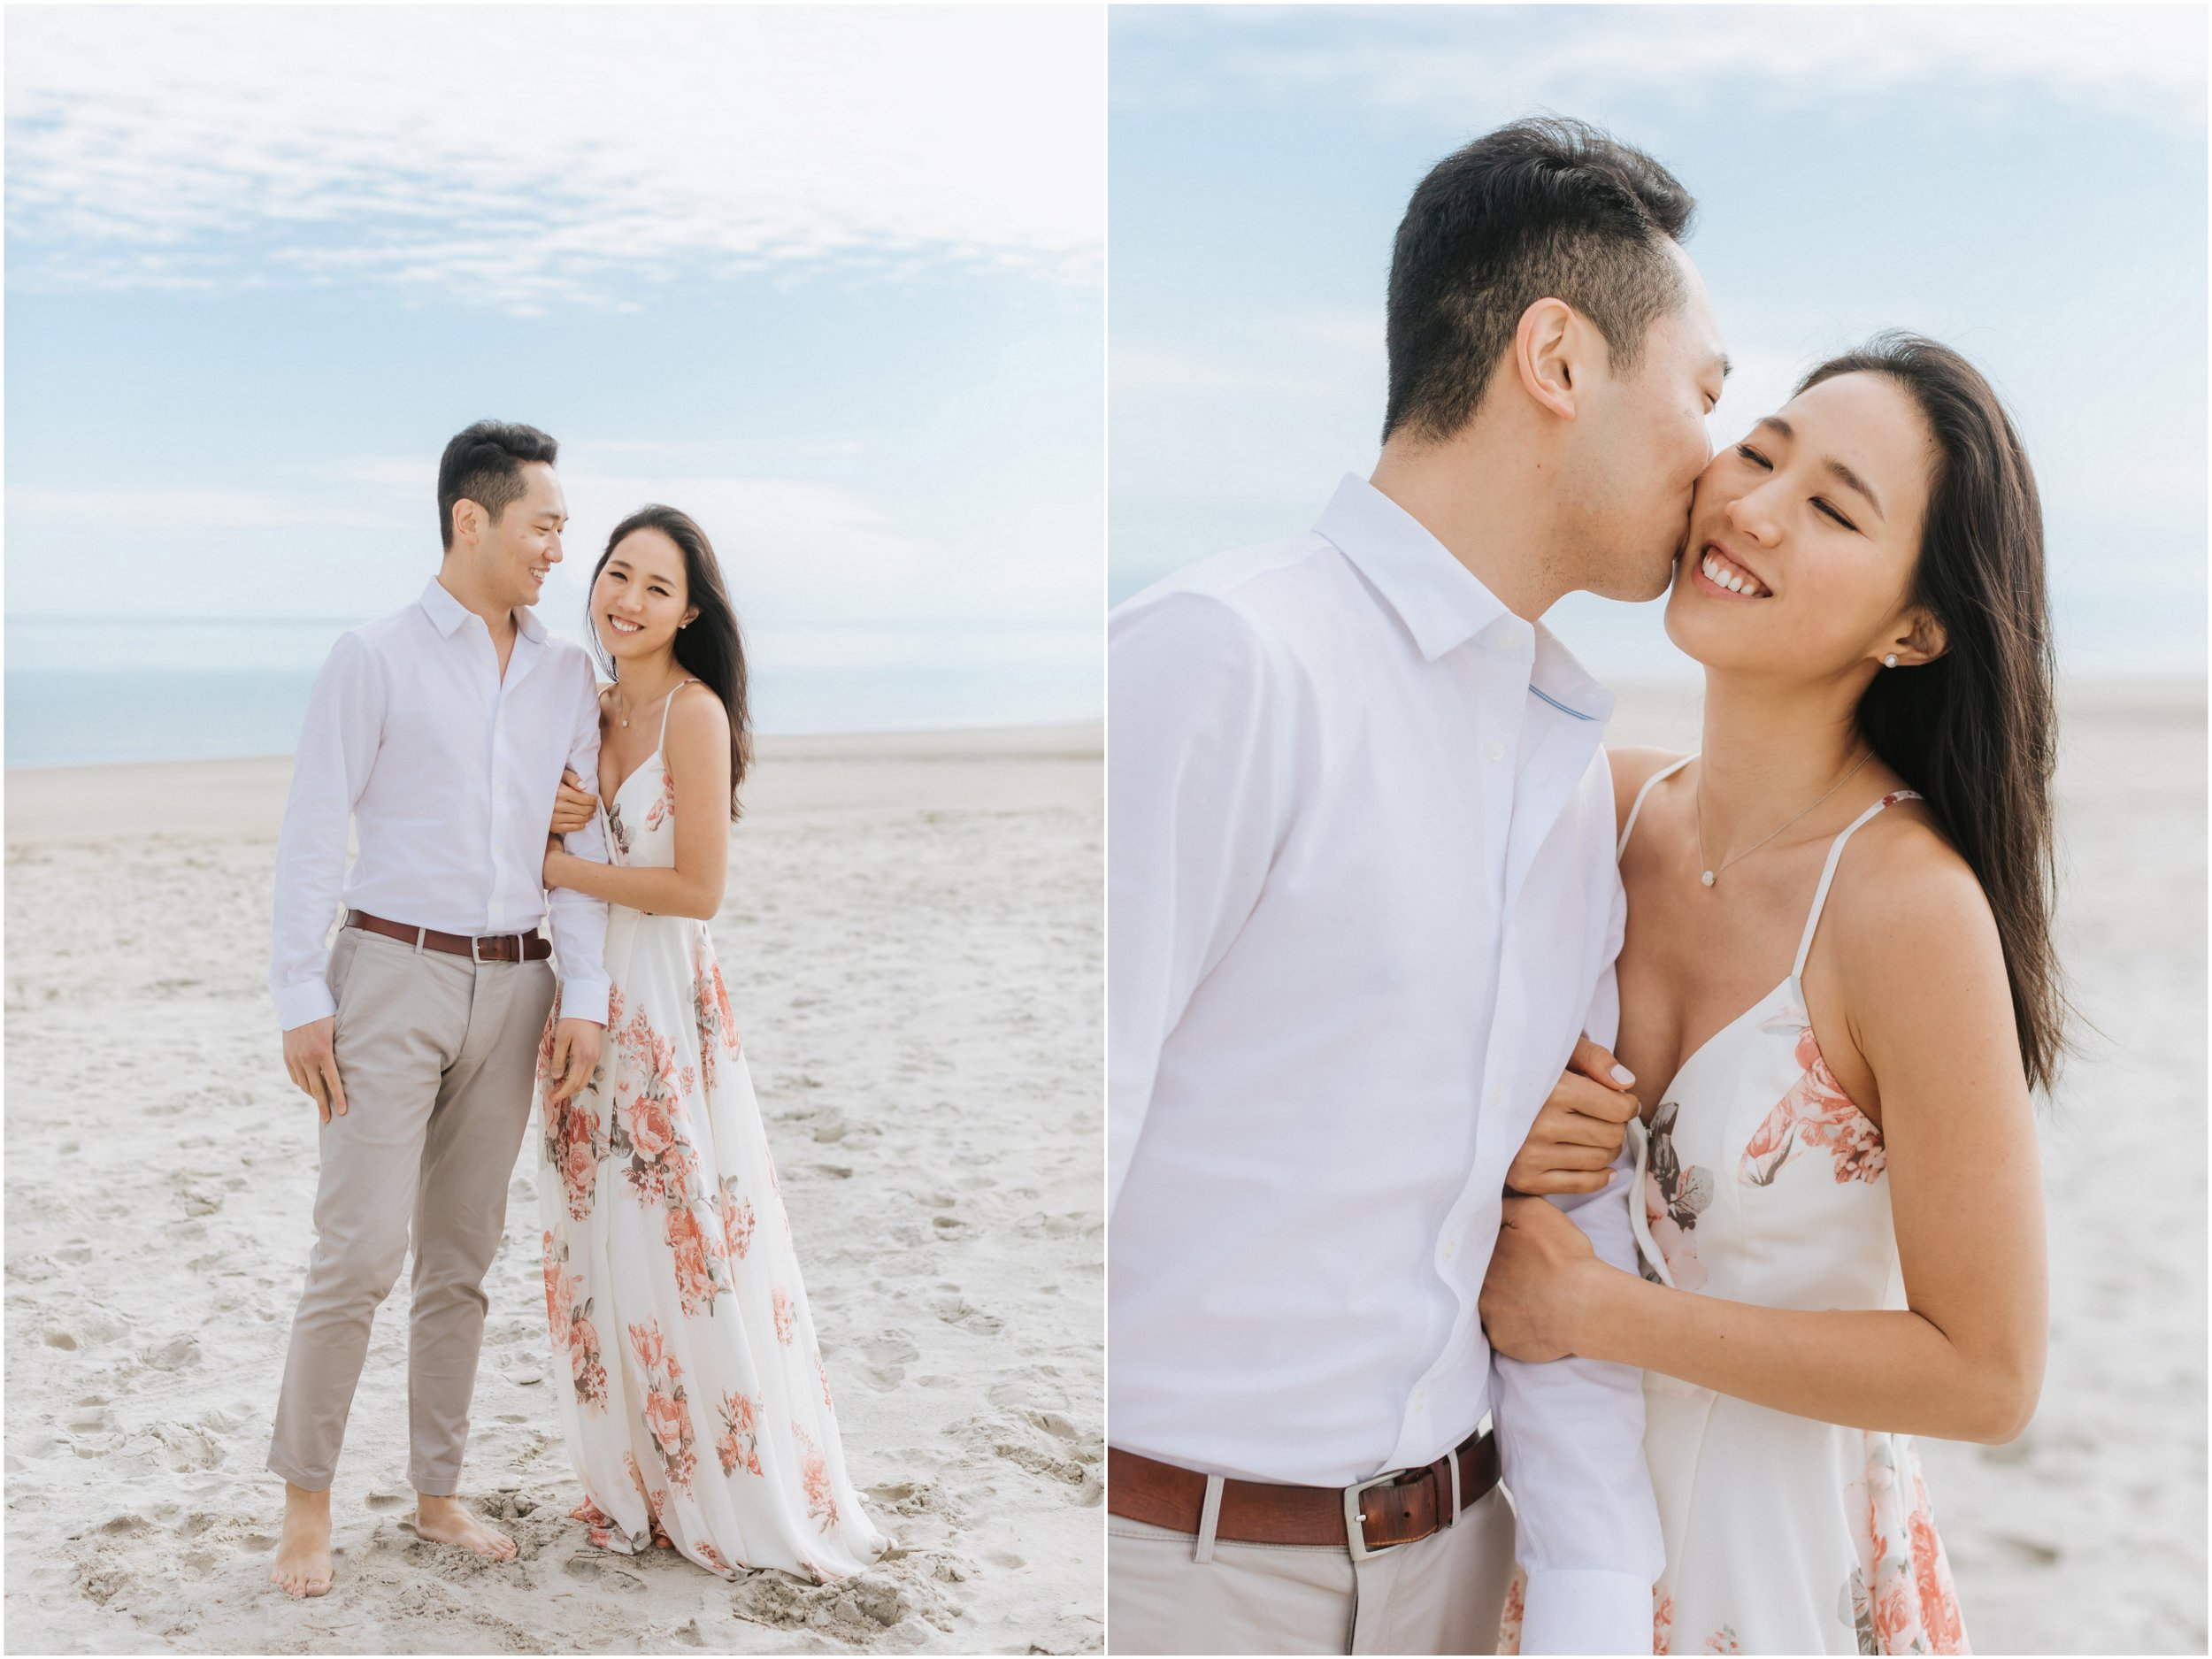 Crane-Beach-Engagement-Wedding-Lena-Mirisola-4.JPG